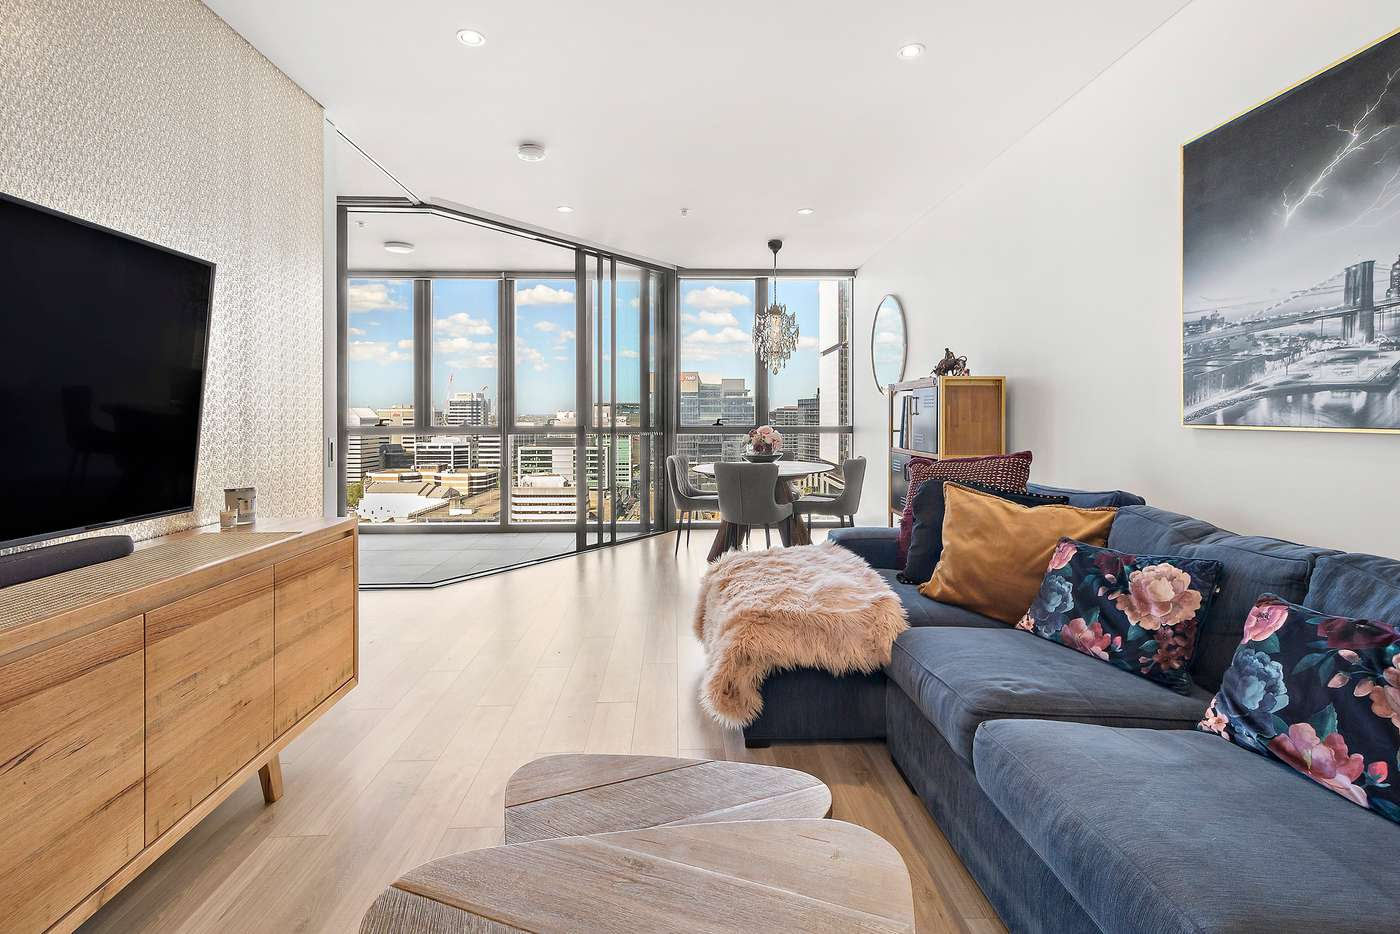 Main view of Homely apartment listing, 1609/45 Macquarie Street, Parramatta NSW 2150